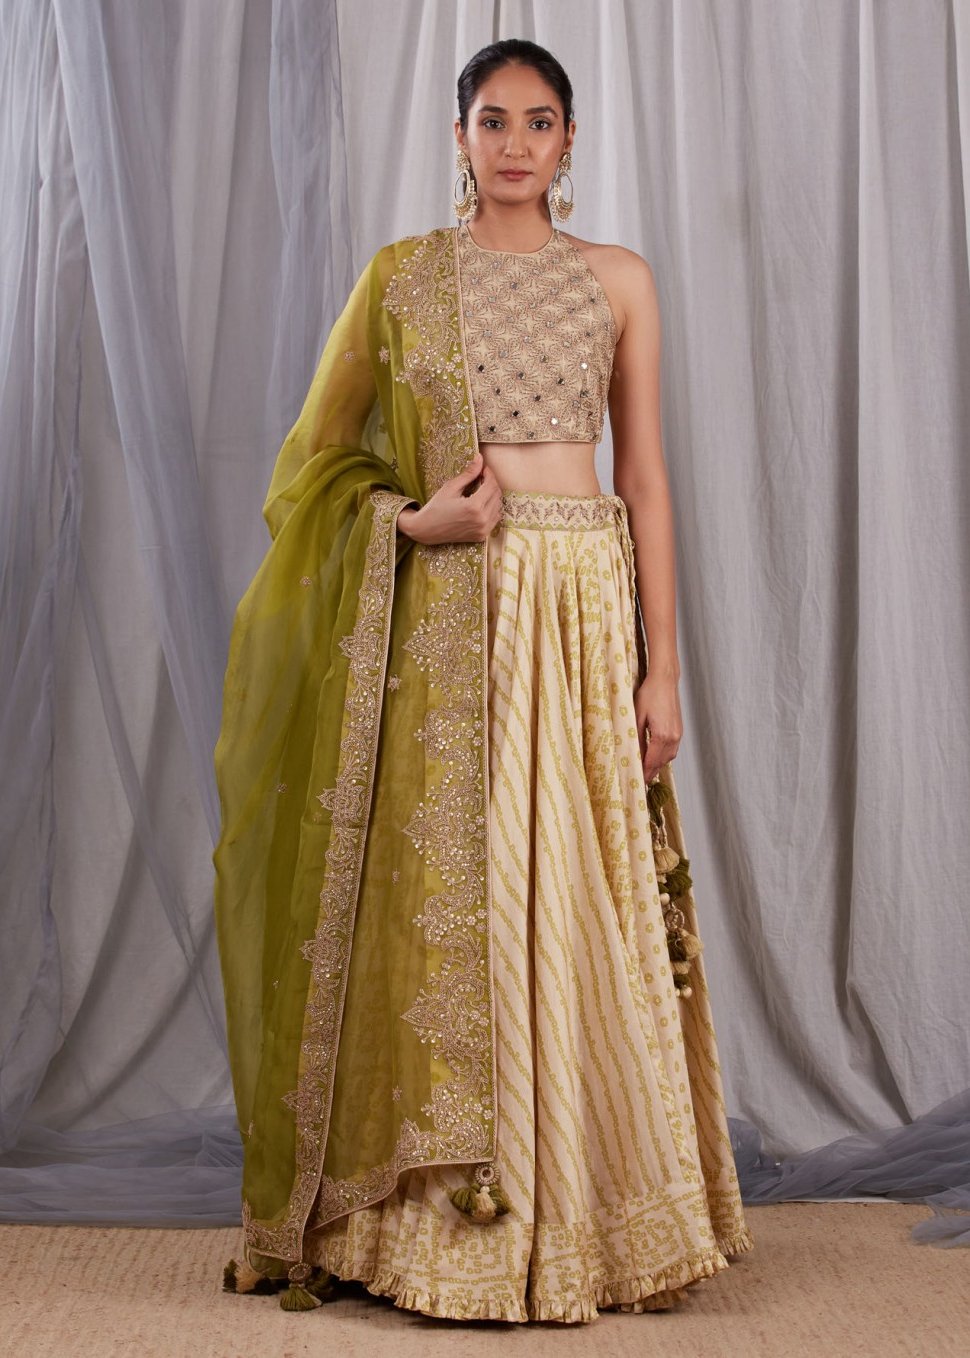 Sleeveless Blouse With A Skirt And A Heavy Dupatta